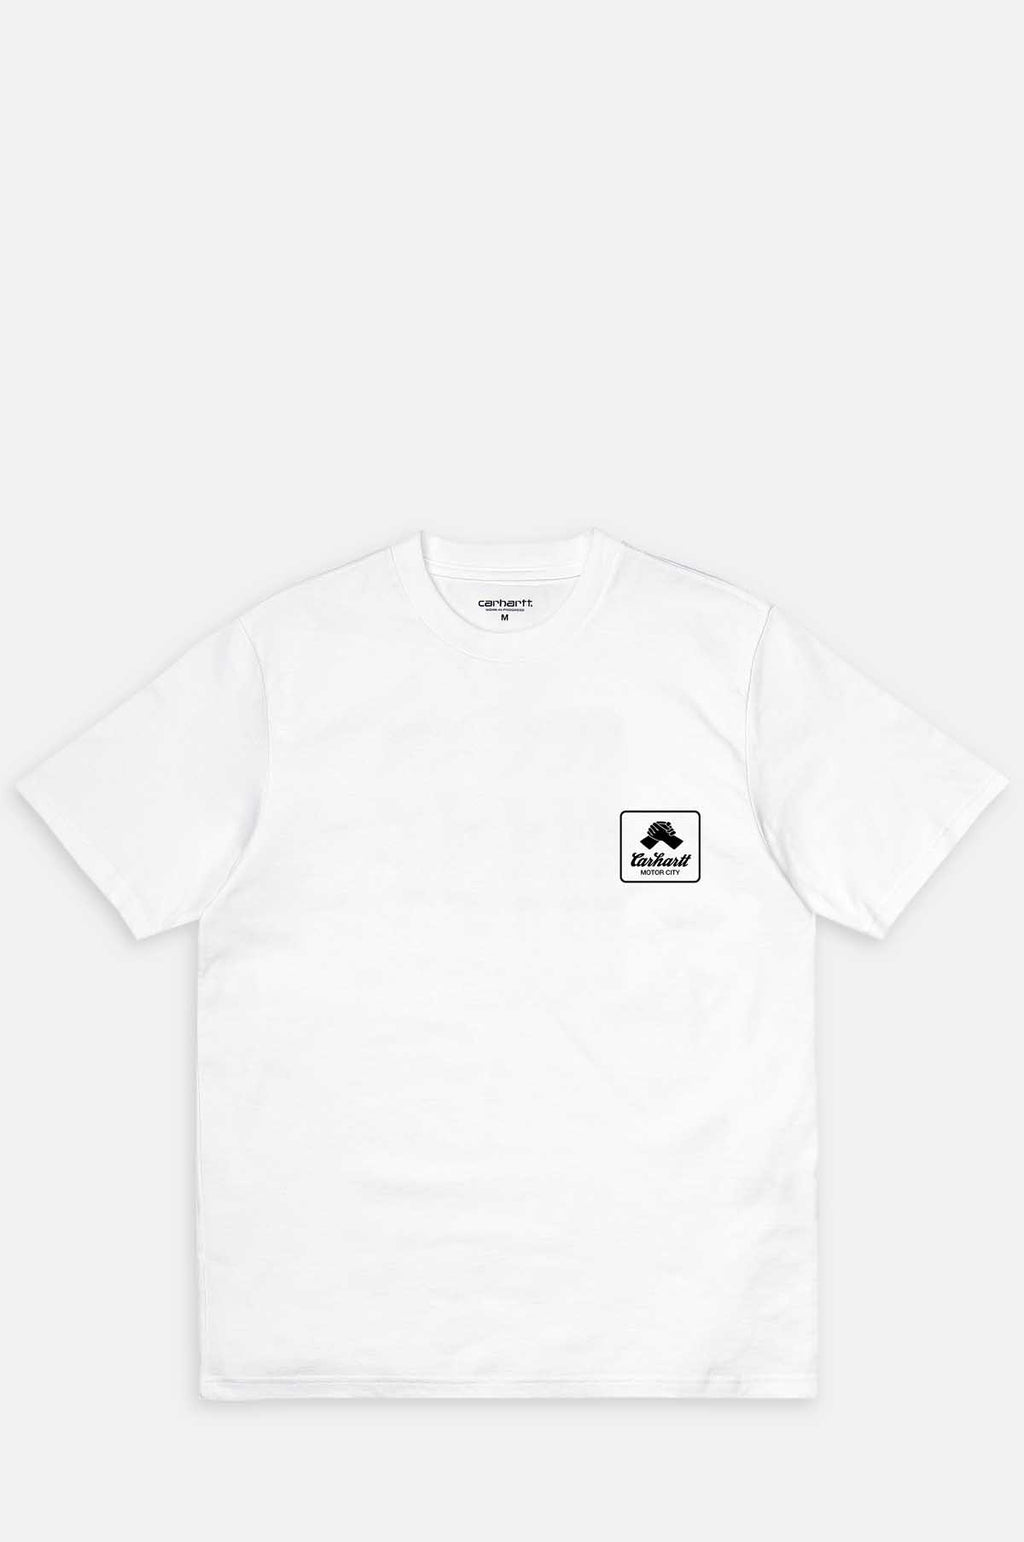 Short Sleeve Peace State T Shirt in White and Black